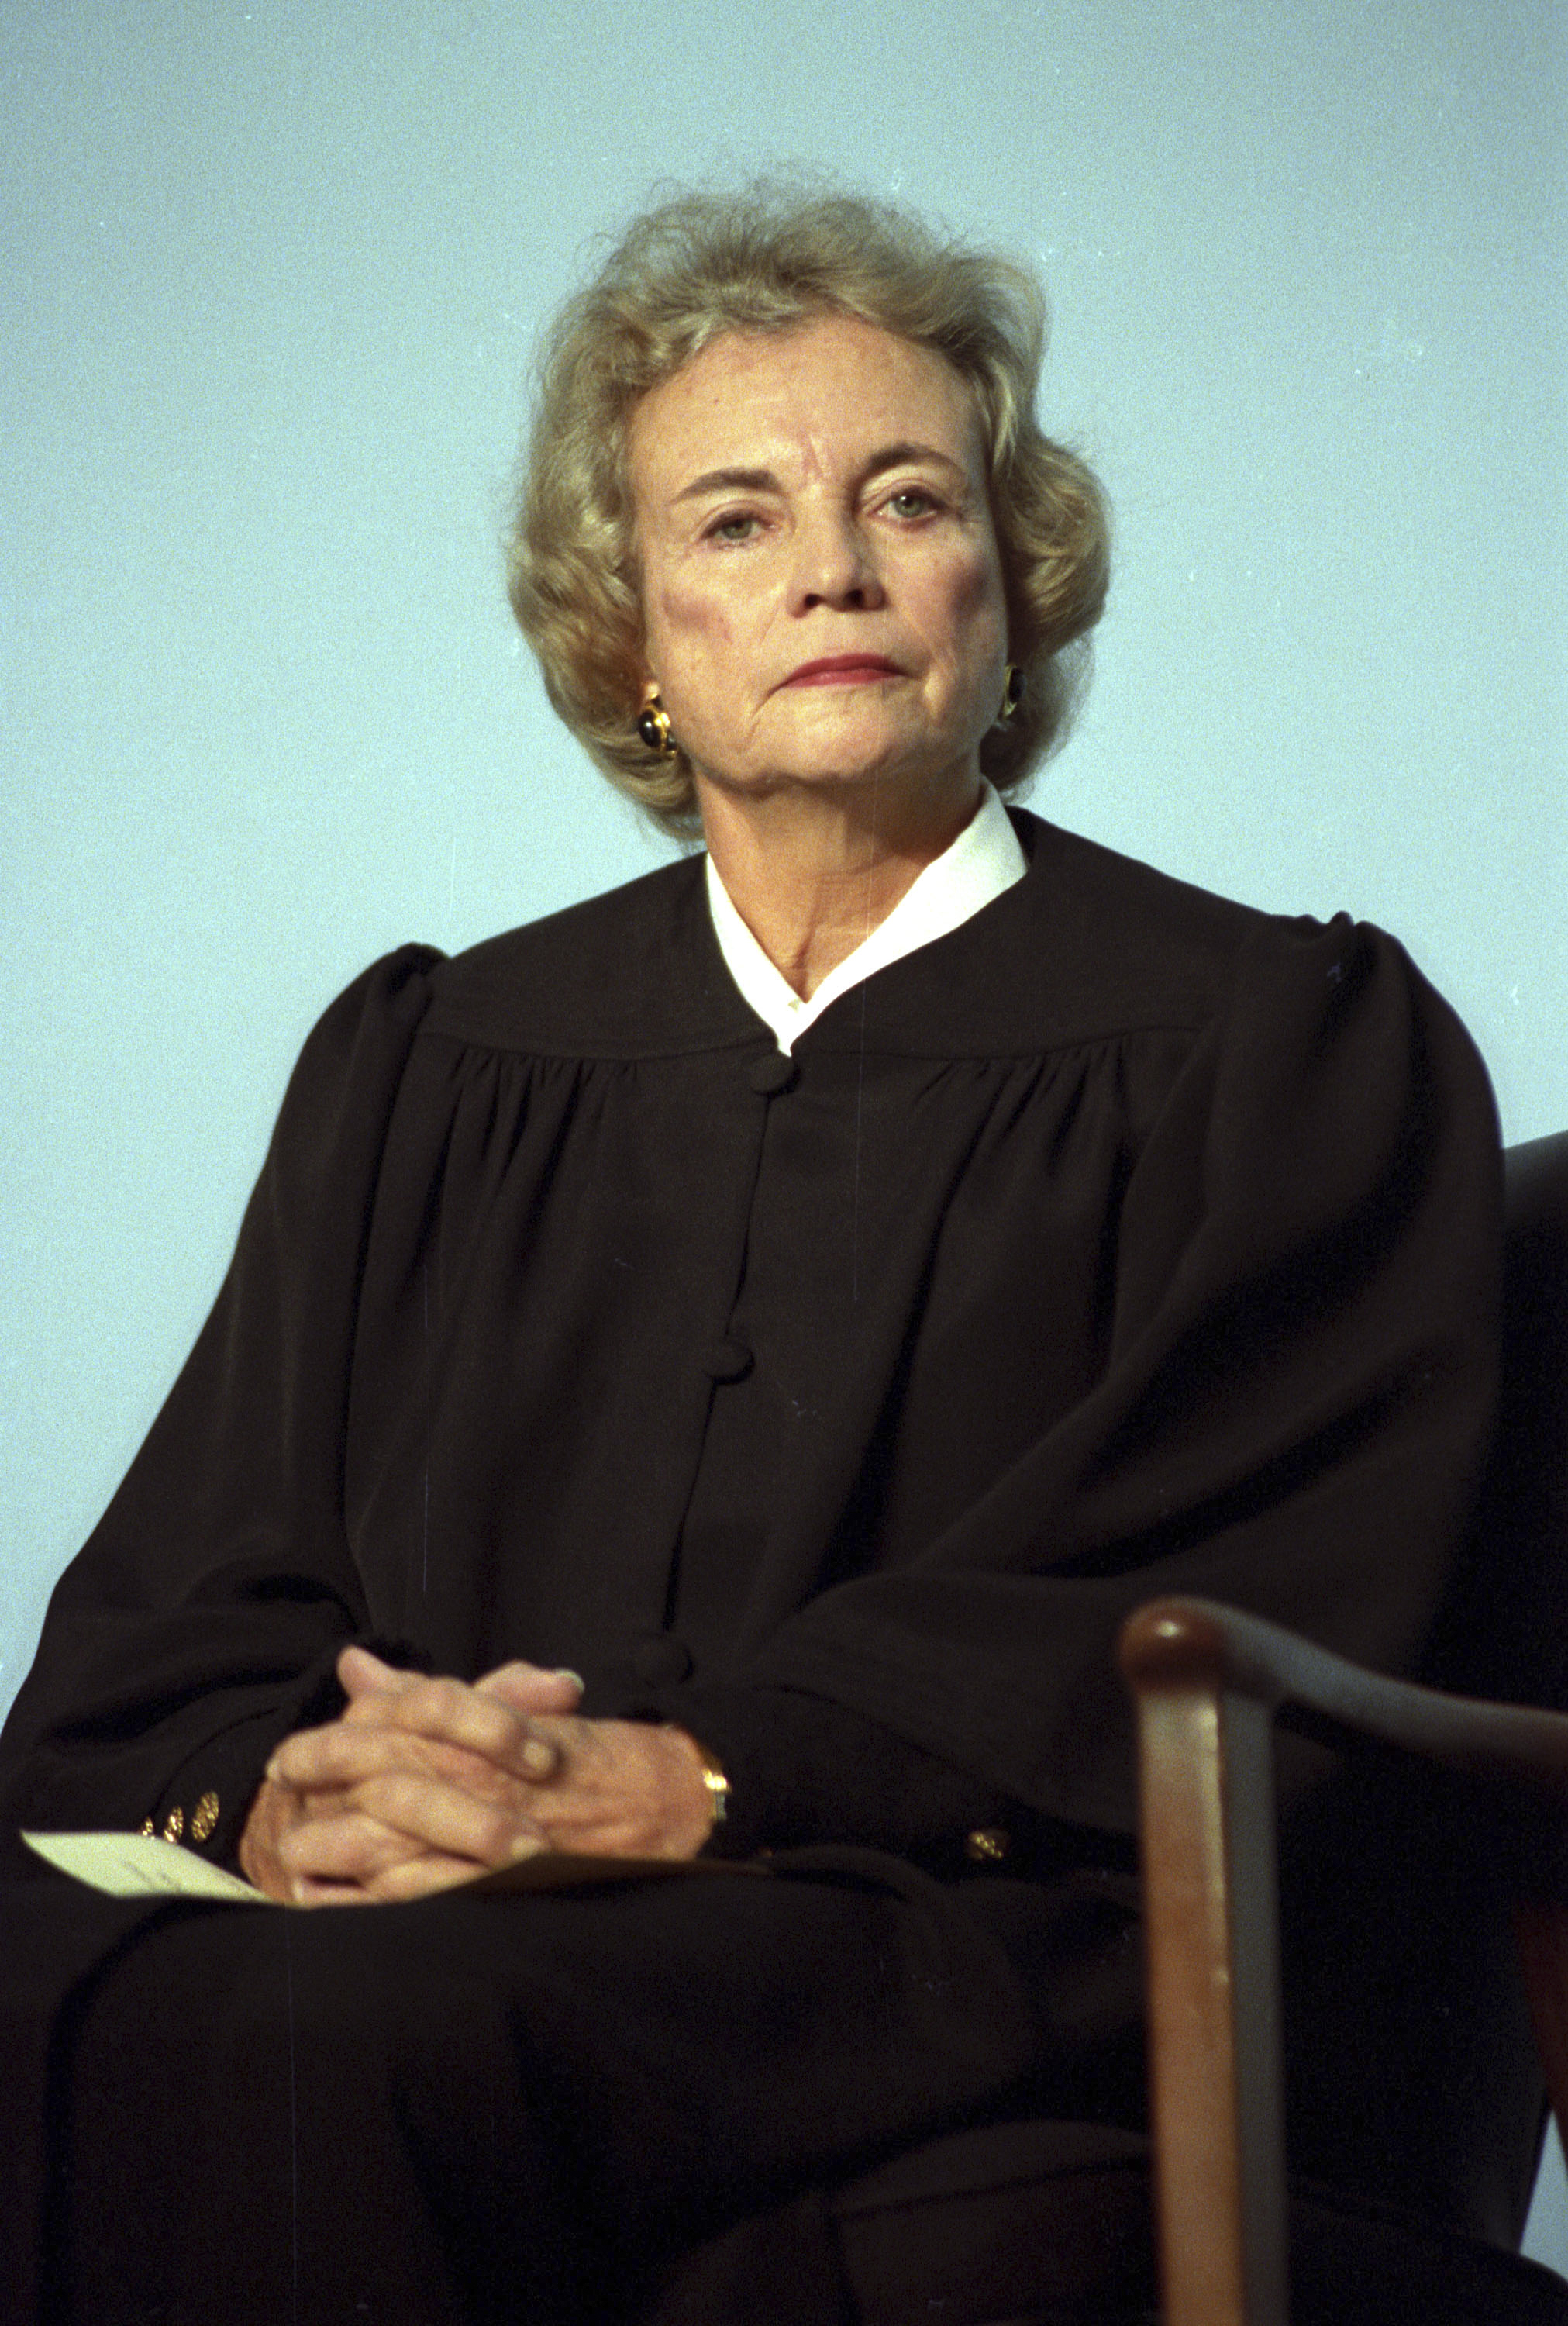 U.S. Supreme Court Justice Sandra Day O'Connor poses for a portrait in Washington November 12, 1991. REUTERS/Rick Wilking